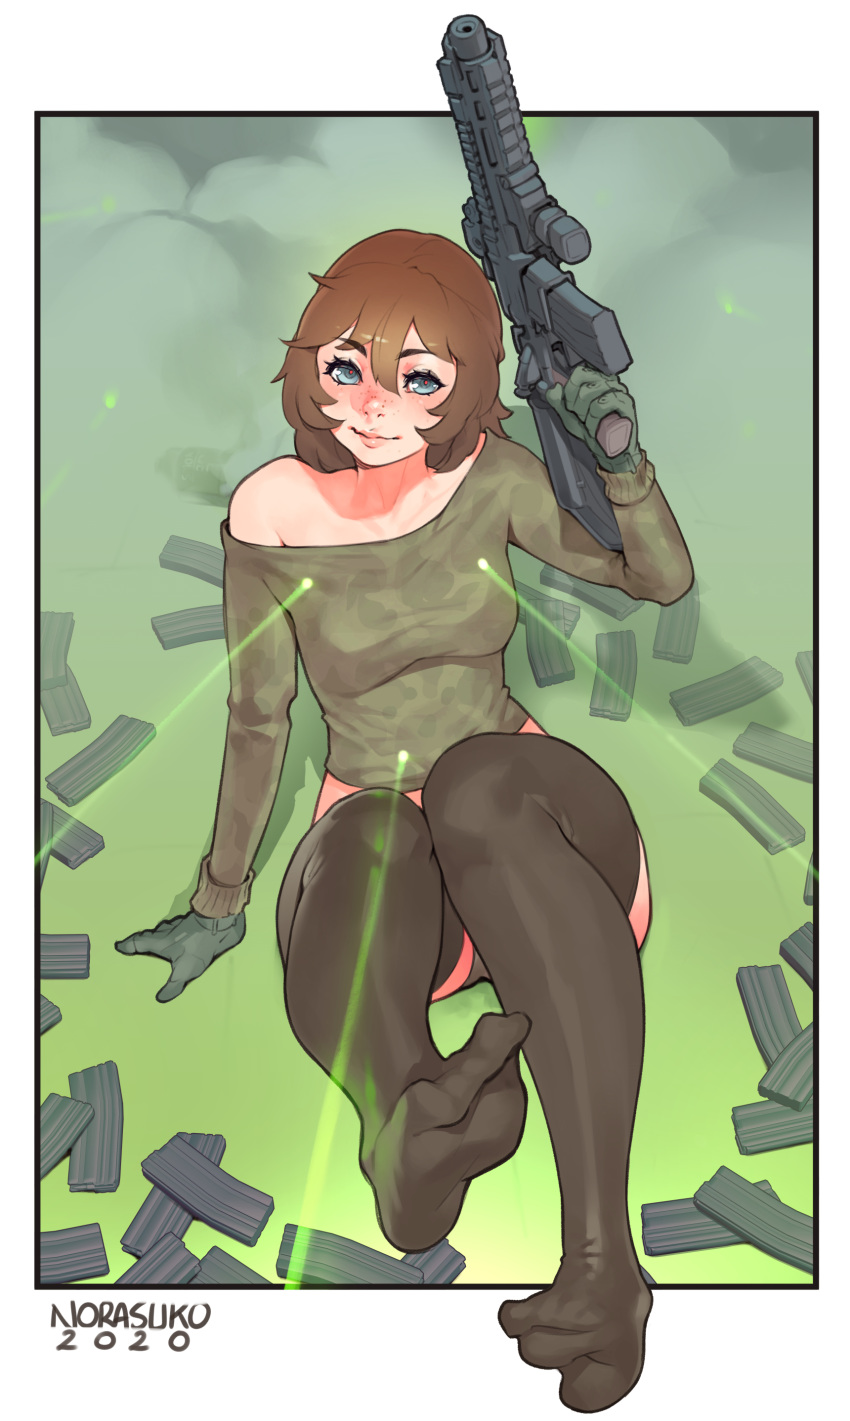 1girl 2020 absurdres artist_name assault_rifle black_legwear black_shorts blue_eyes border borrowed_character breasts brooke_(mathias_leth) brown_hair commentary english_commentary eyebrows_visible_through_hair freckles full_body gloves green_gloves gun hair_between_eyes highres holding holding_gun holding_weapon laser_sight lips magazine_(weapon) medium_hair midriff no_shoes norasuko nose off-shoulder_sweater off_shoulder original outside_border rifle short_shorts shorts small_breasts solo sweater thigh-highs toe_scrunch trigger_discipline weapon white_border